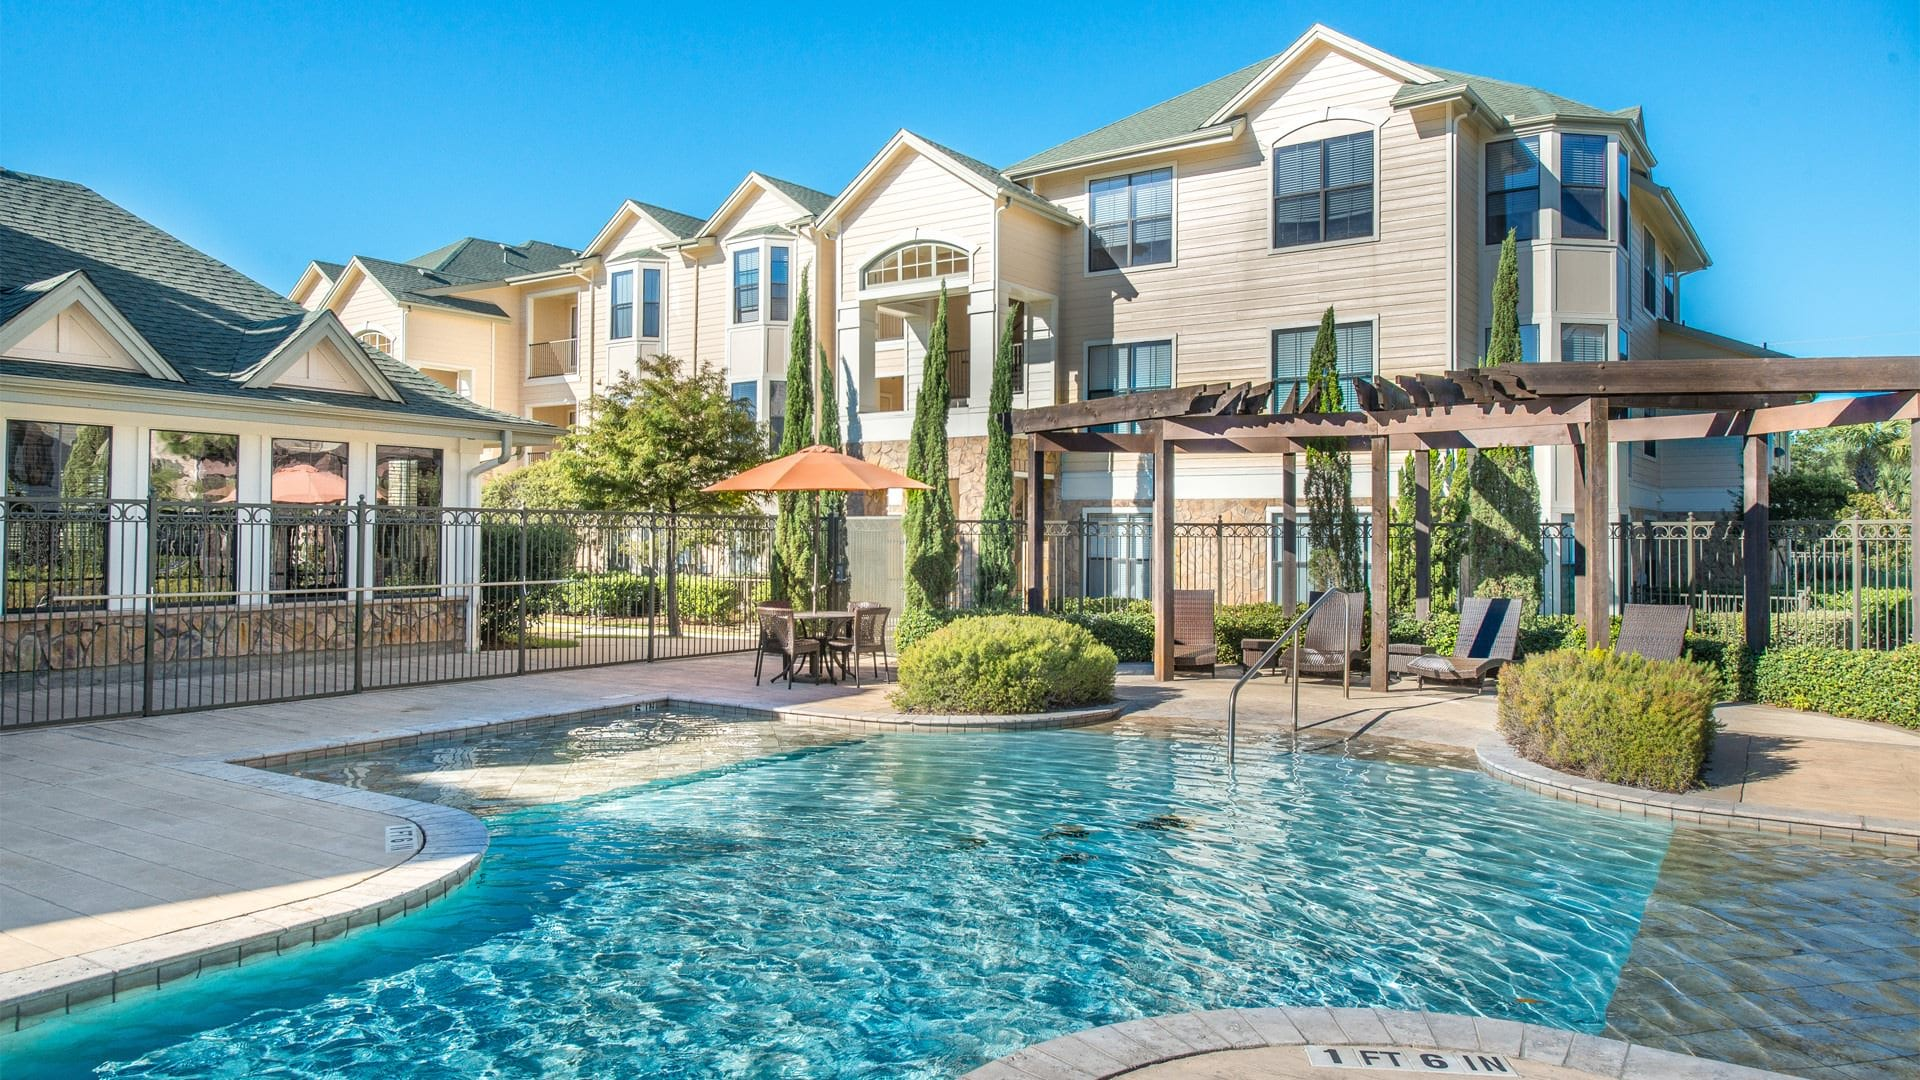 Apartment Complex with Pool